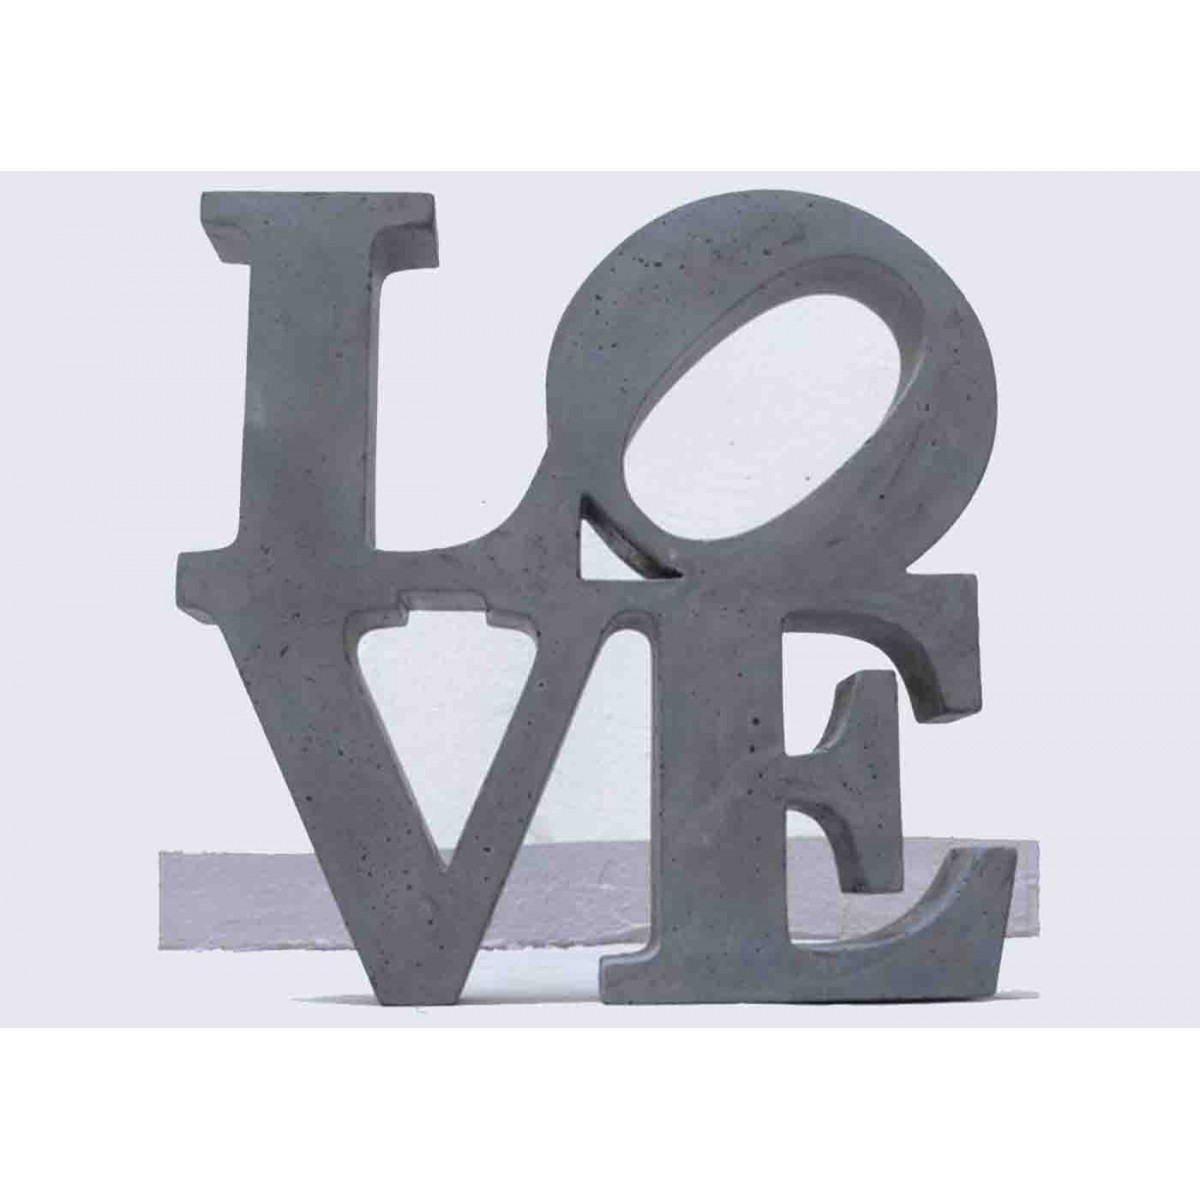 objet tendance en b ton color big love sign bbync